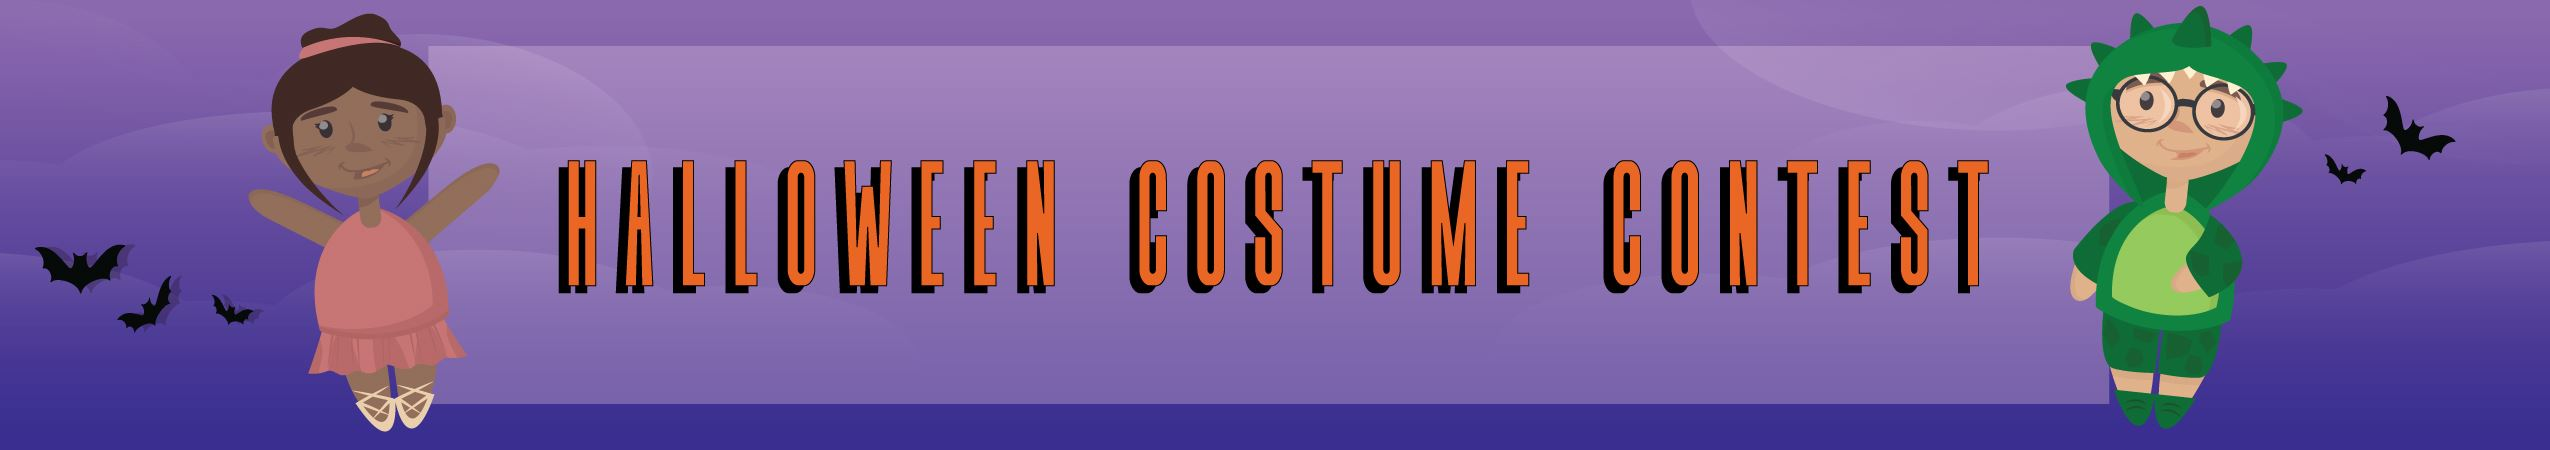 Halloween-Costume-Contest-Web-Banner